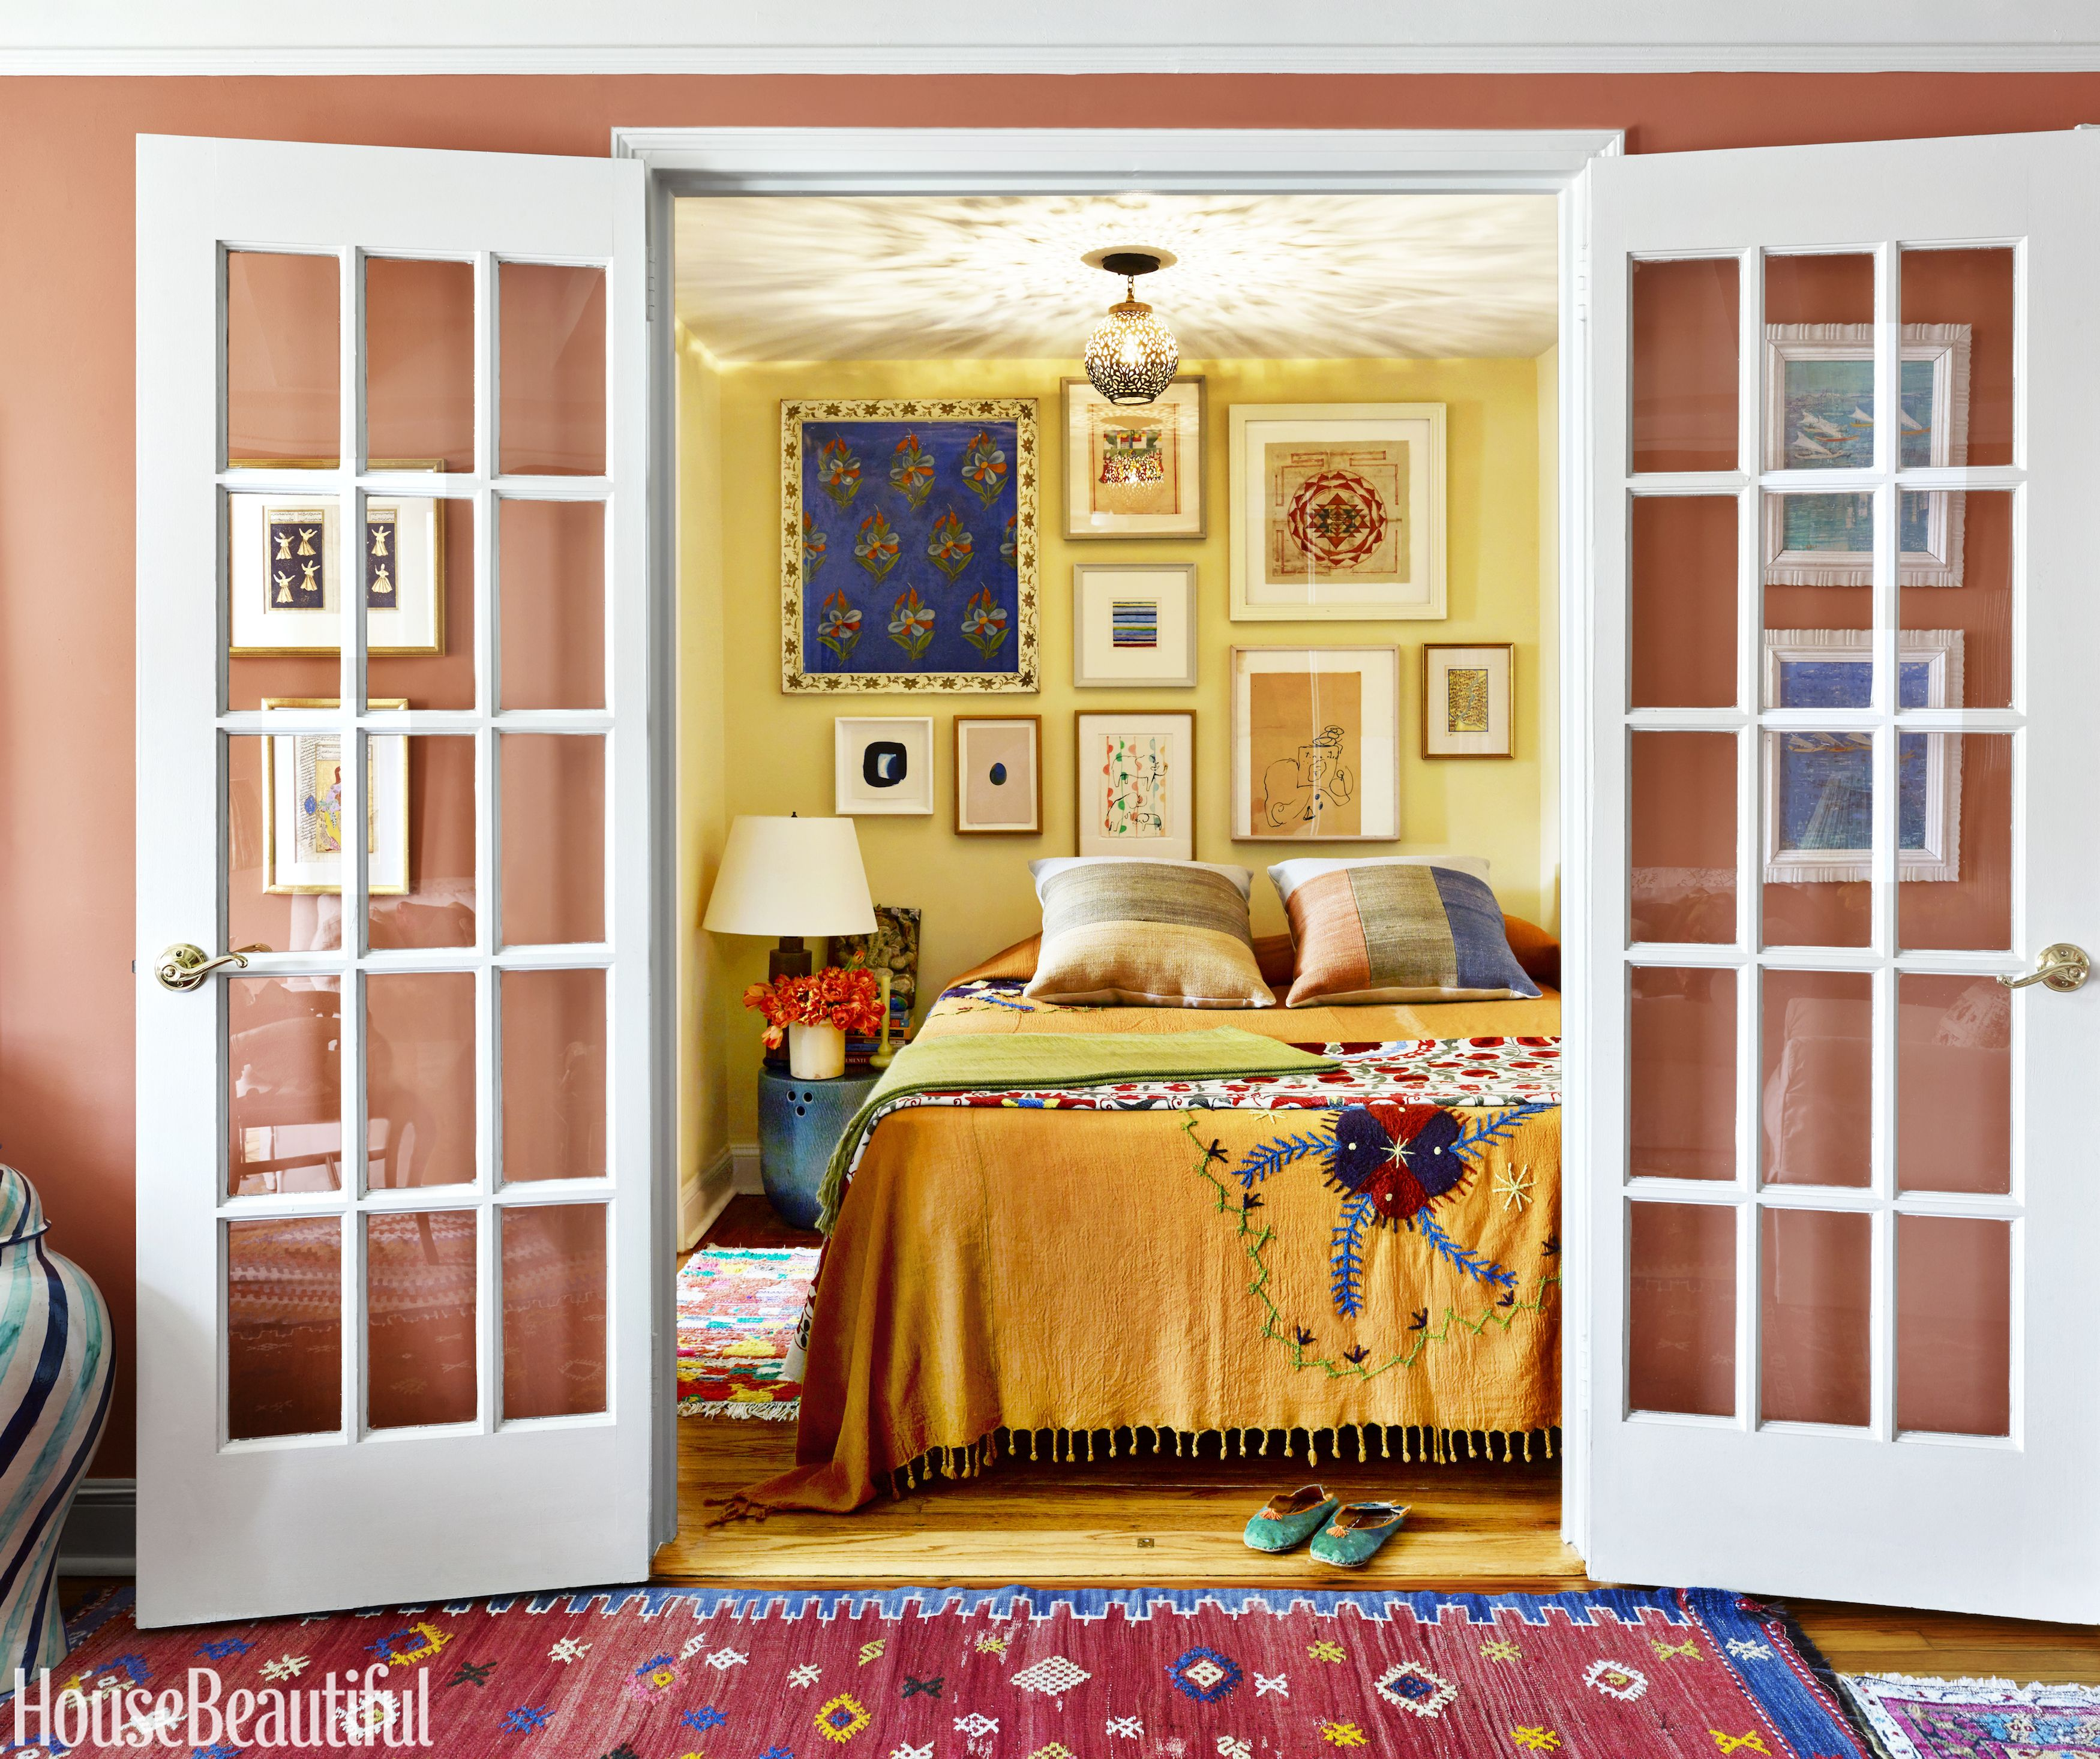 40 Bedroom Colors That Will Make You Wake Up Happier | Pinterest ...